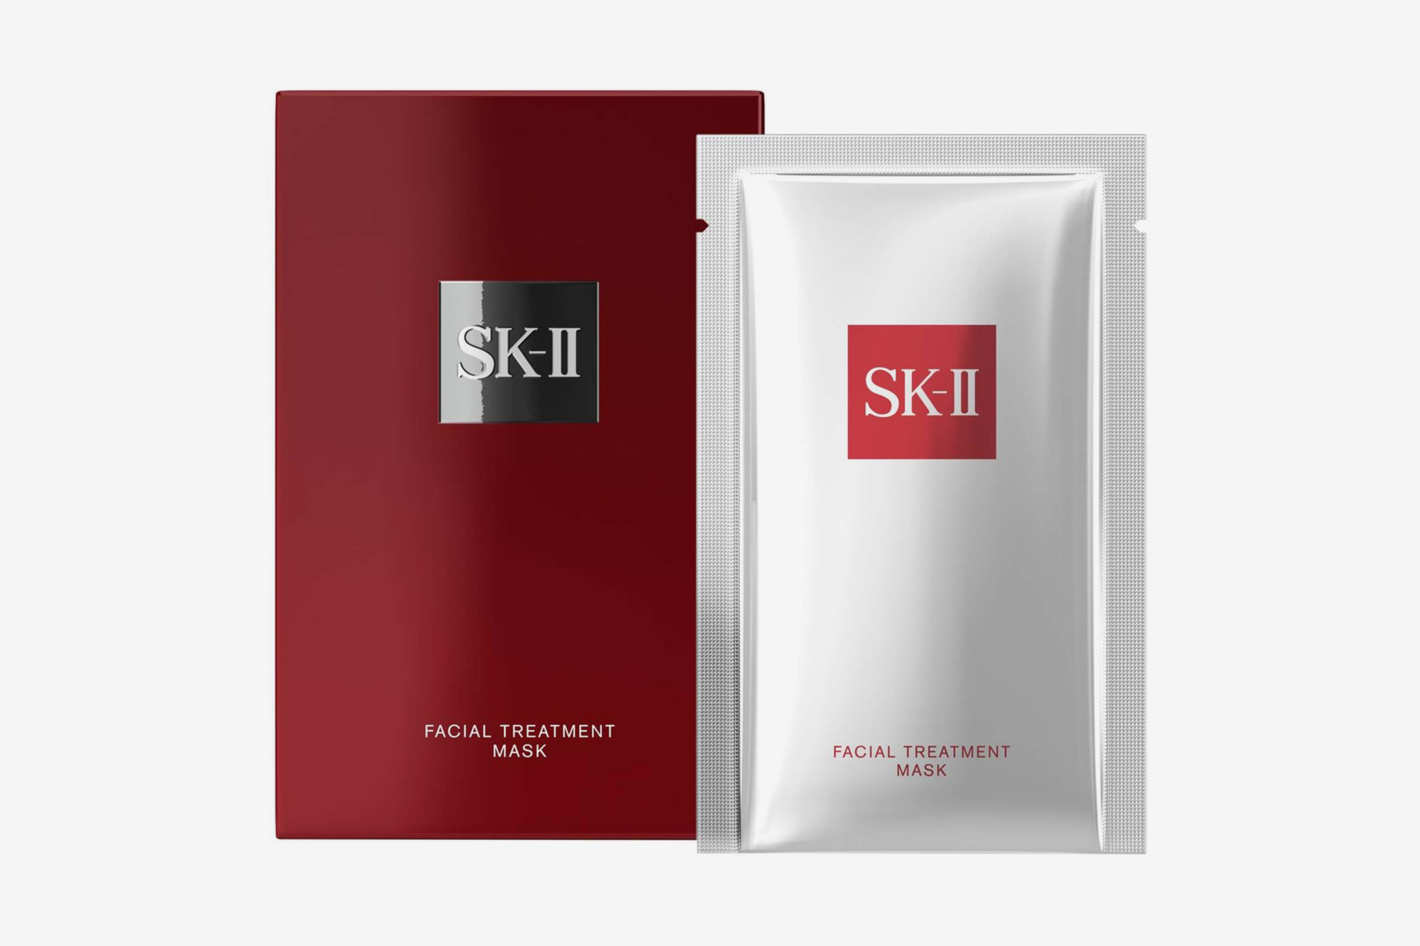 SK-II 'Facial Treatment' Mask Single